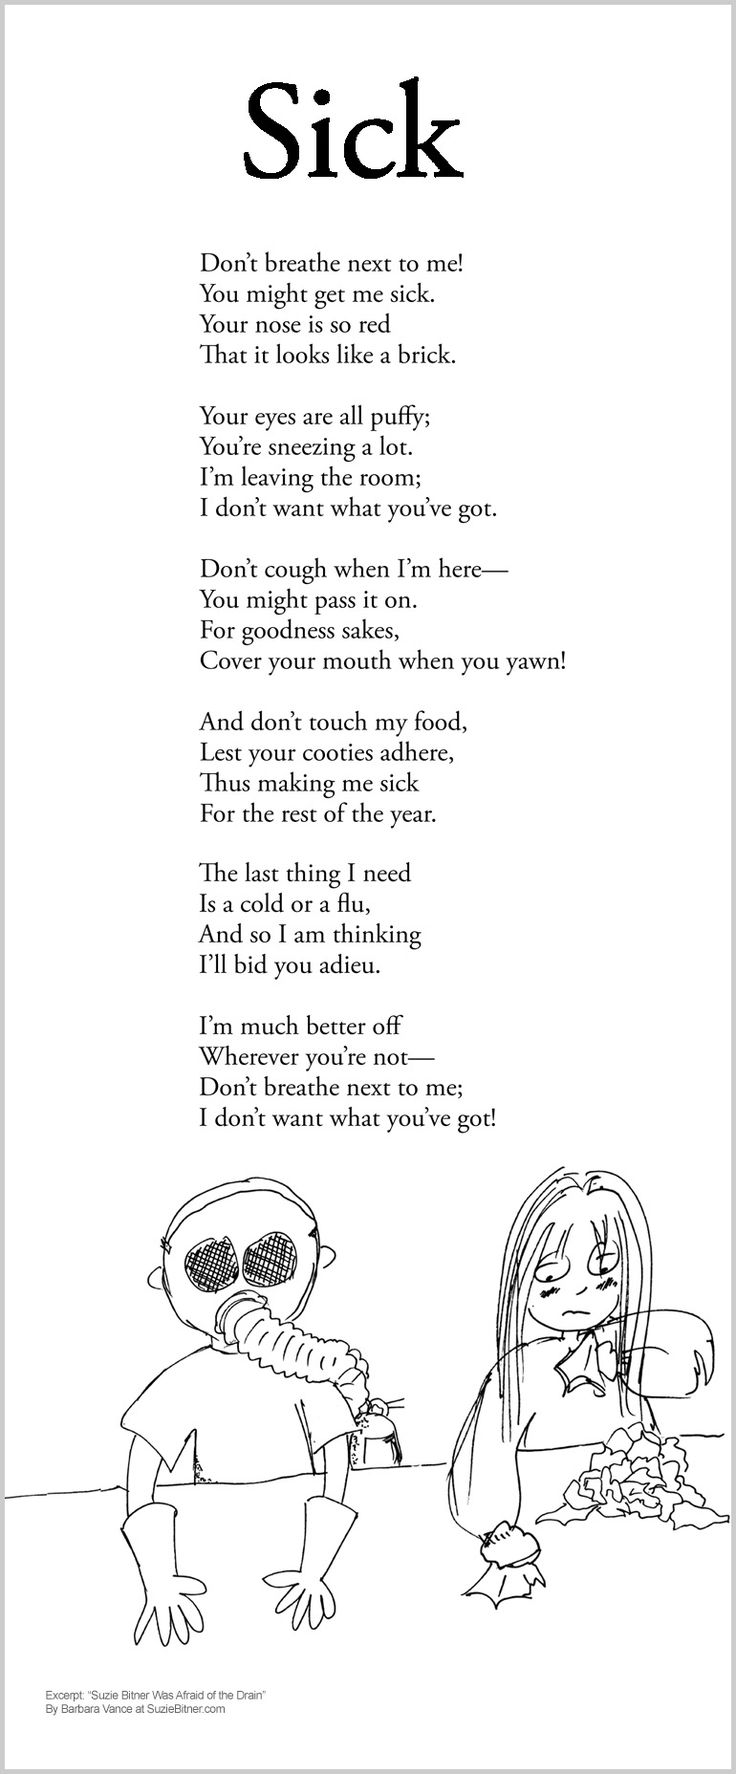 Funny children's Poem about health and getting sick. Great for school and classroom activities. common core  1st grade,  2nd grade,  3rd grade reading